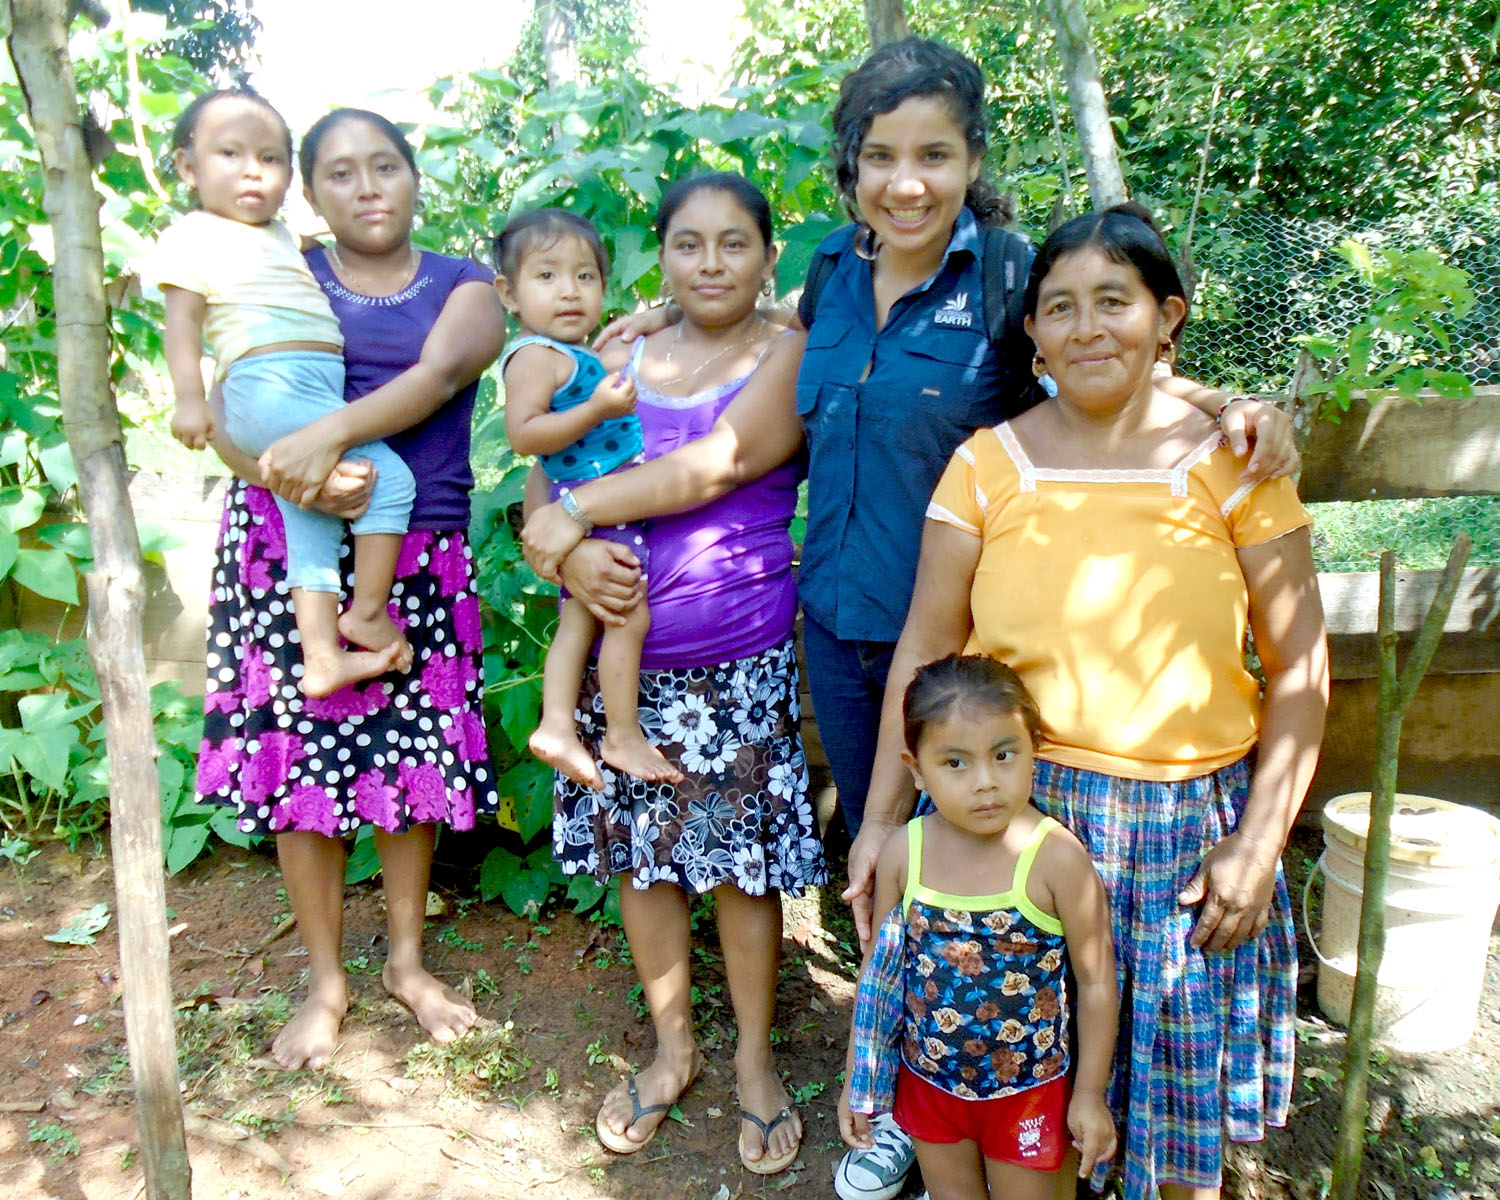 Carolina visits with Rosa Batz and her family in Belize.